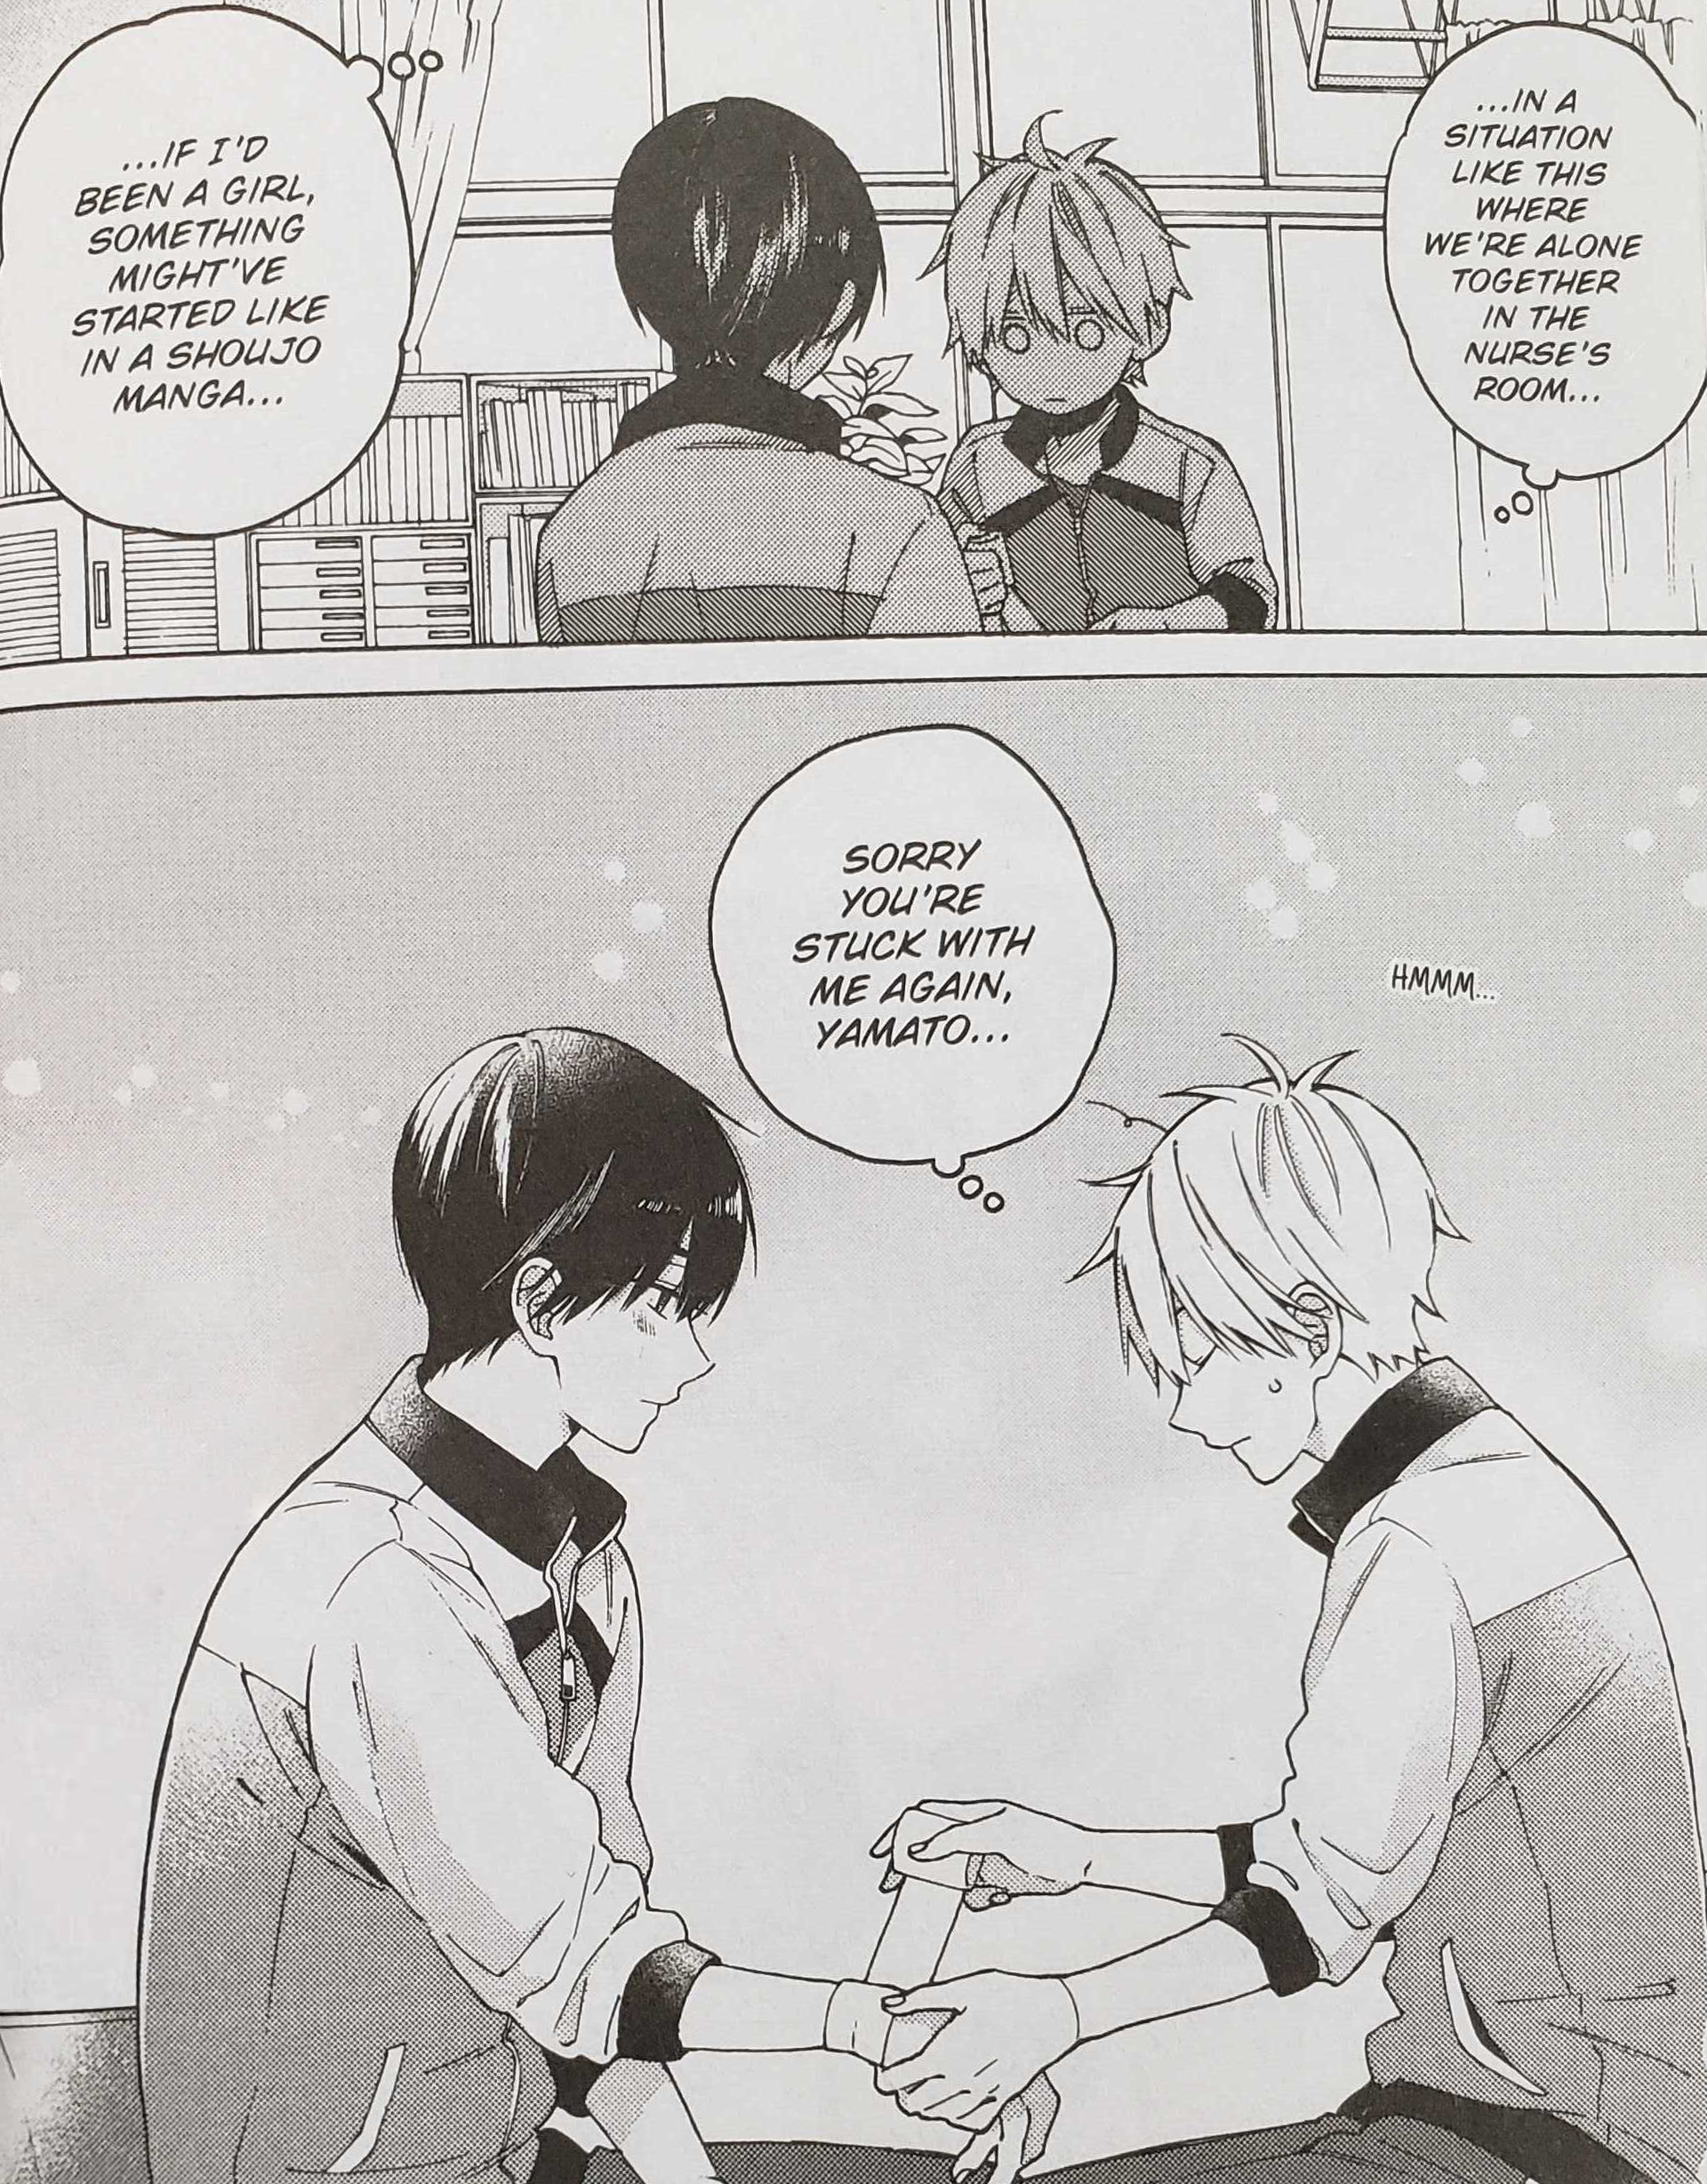 Kakeru wrapping Yamato's wrist (I Cannot Reach You Volume 1, pg. 48).